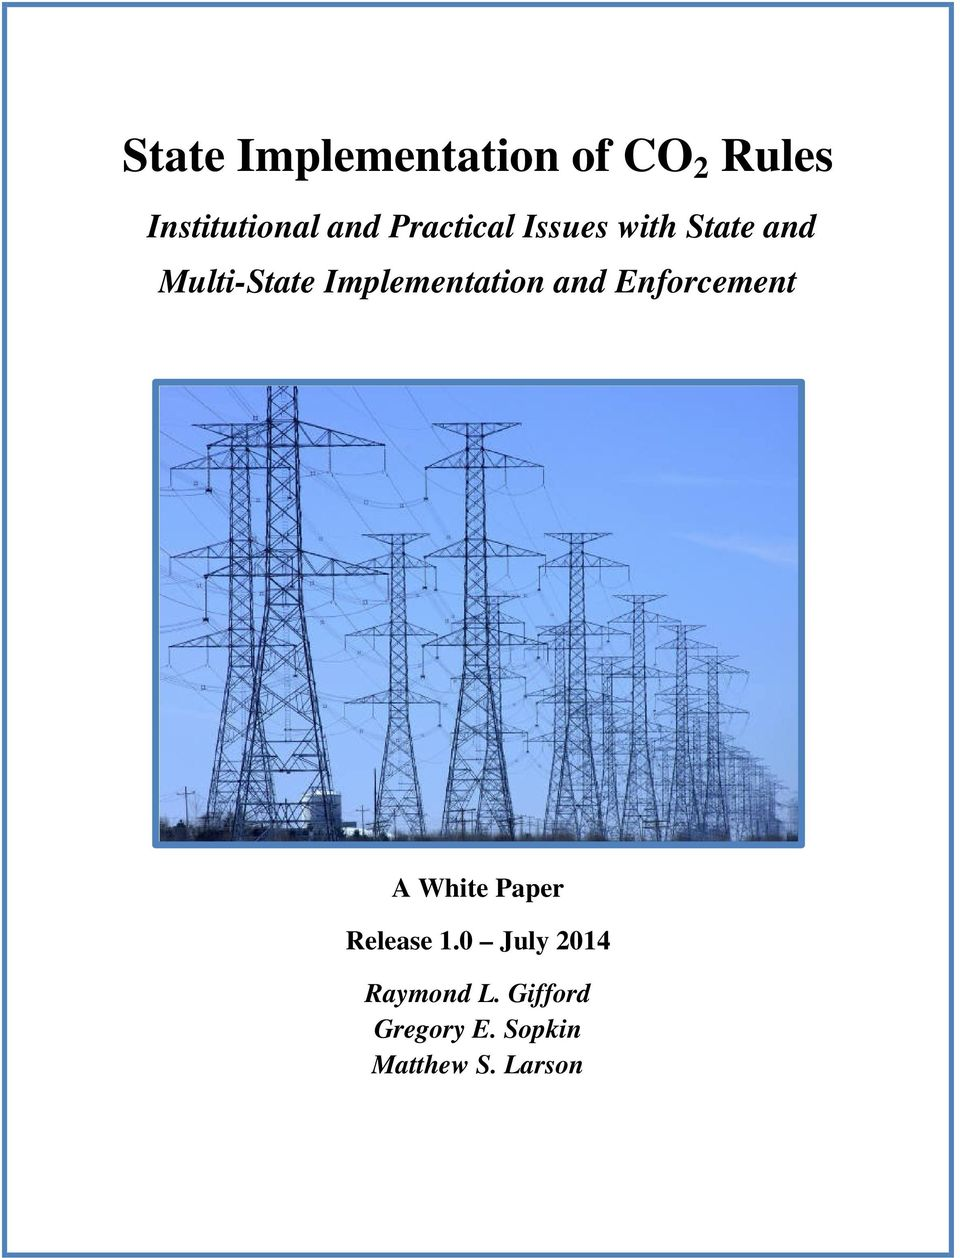 Implementation and Enforcement A White Paper July